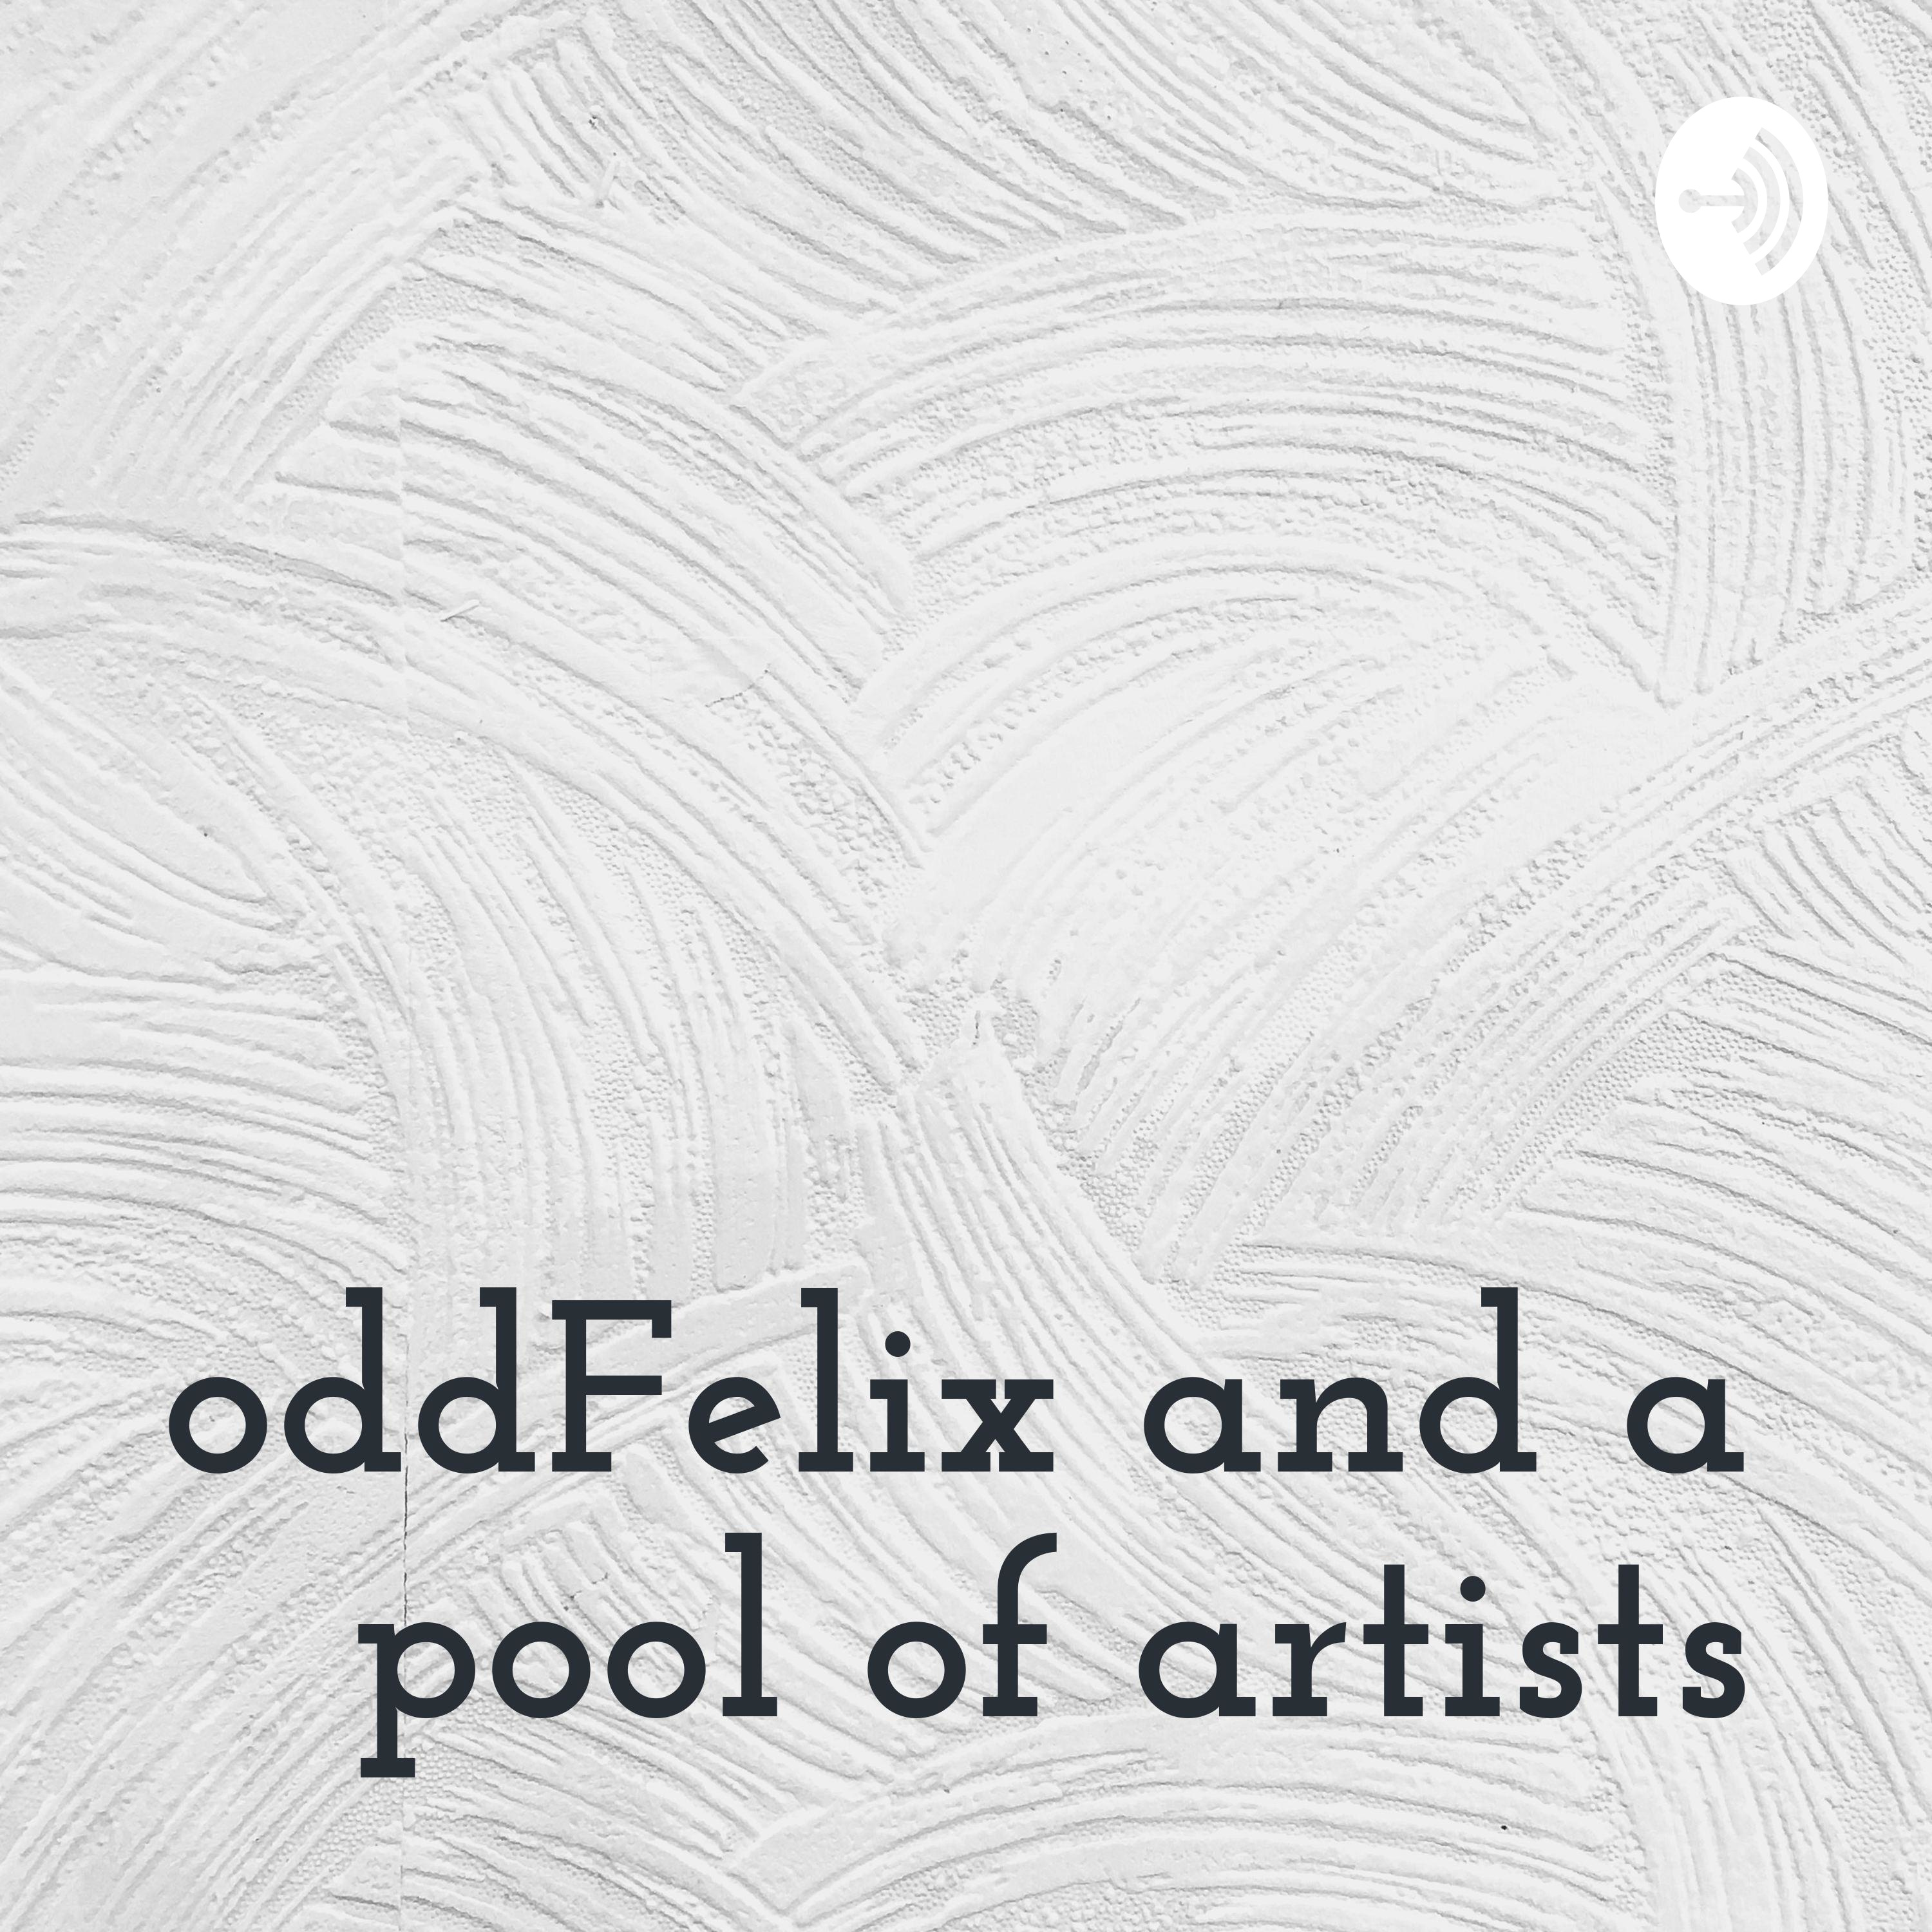 oddFelix and a pool of artists podcast